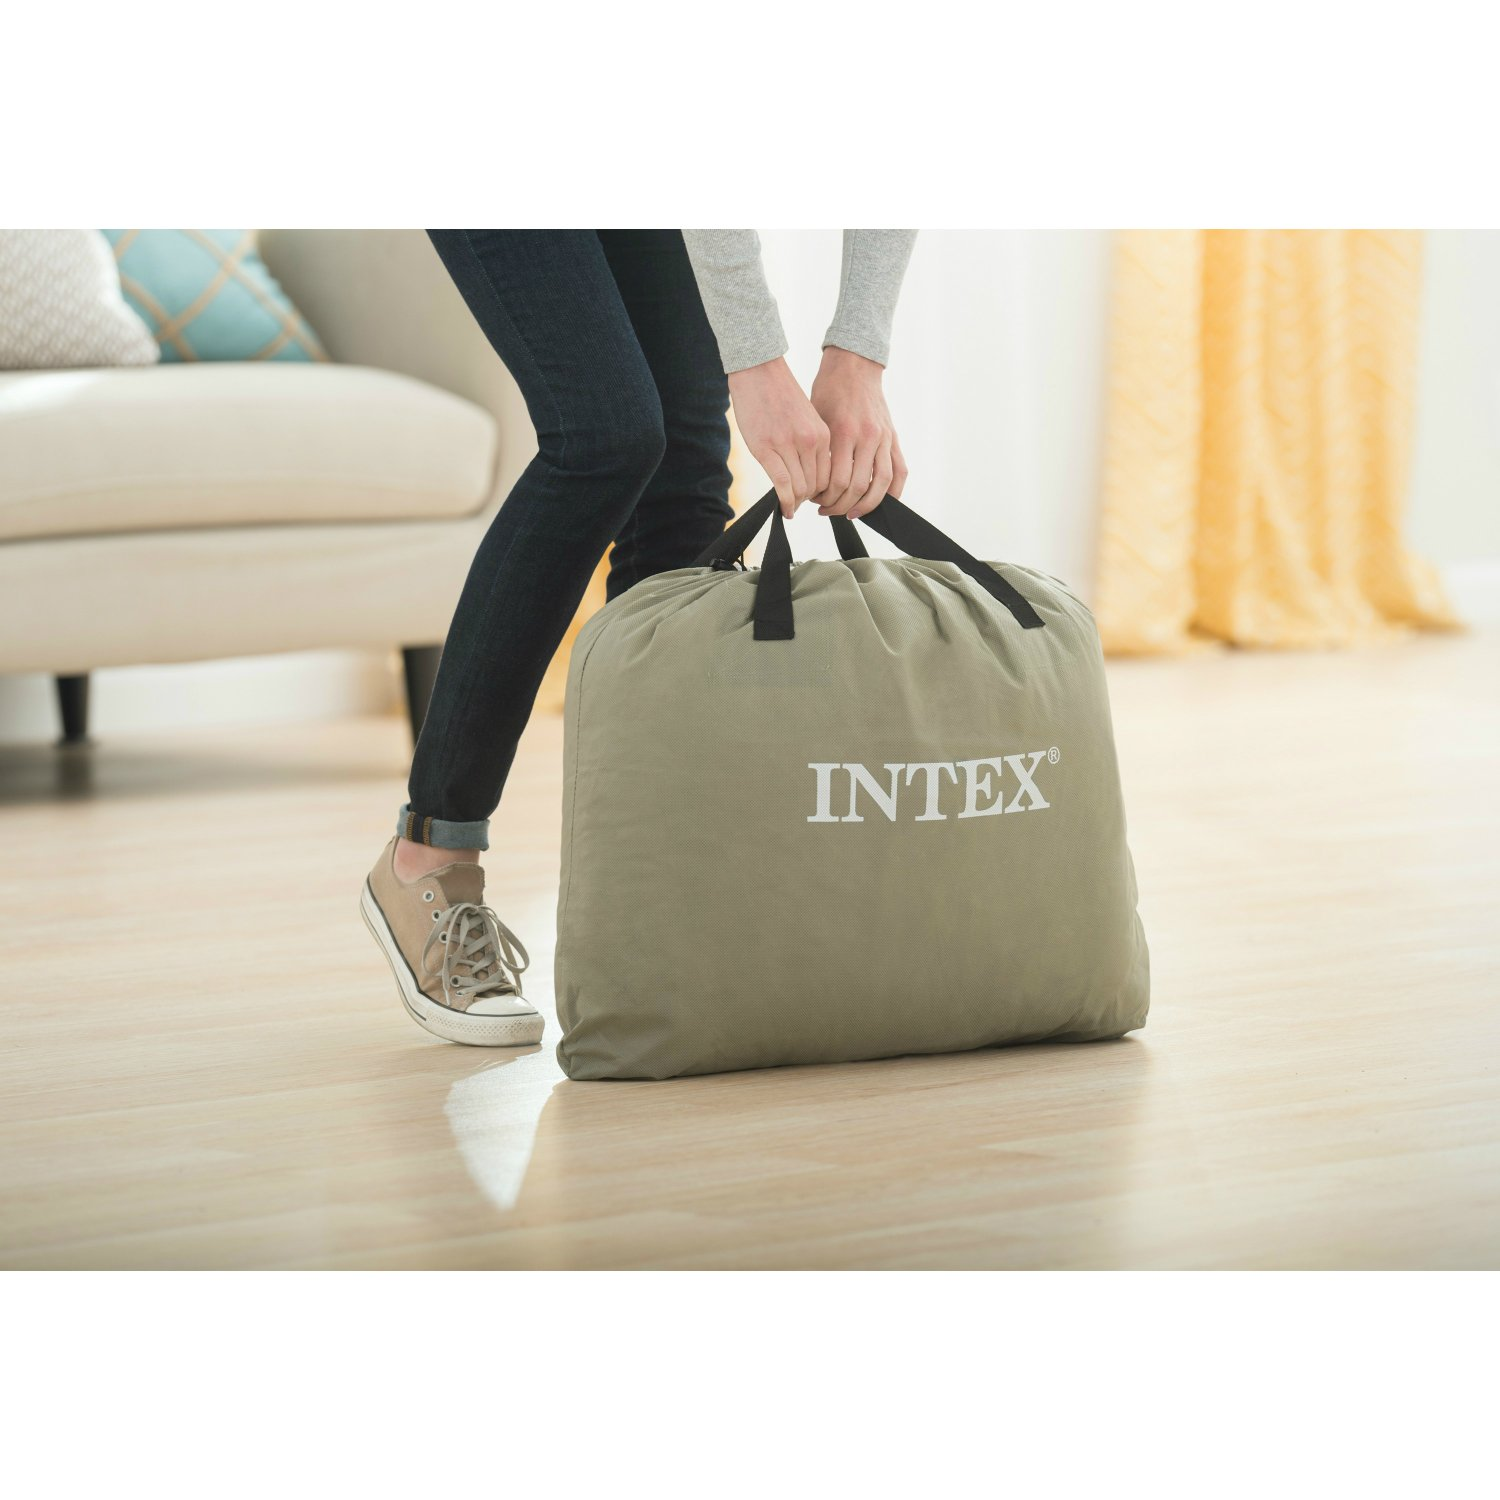 Intex Pillow Rest Classic Airbed with Built-in Pillow and Electric Pump, Queen 66777E